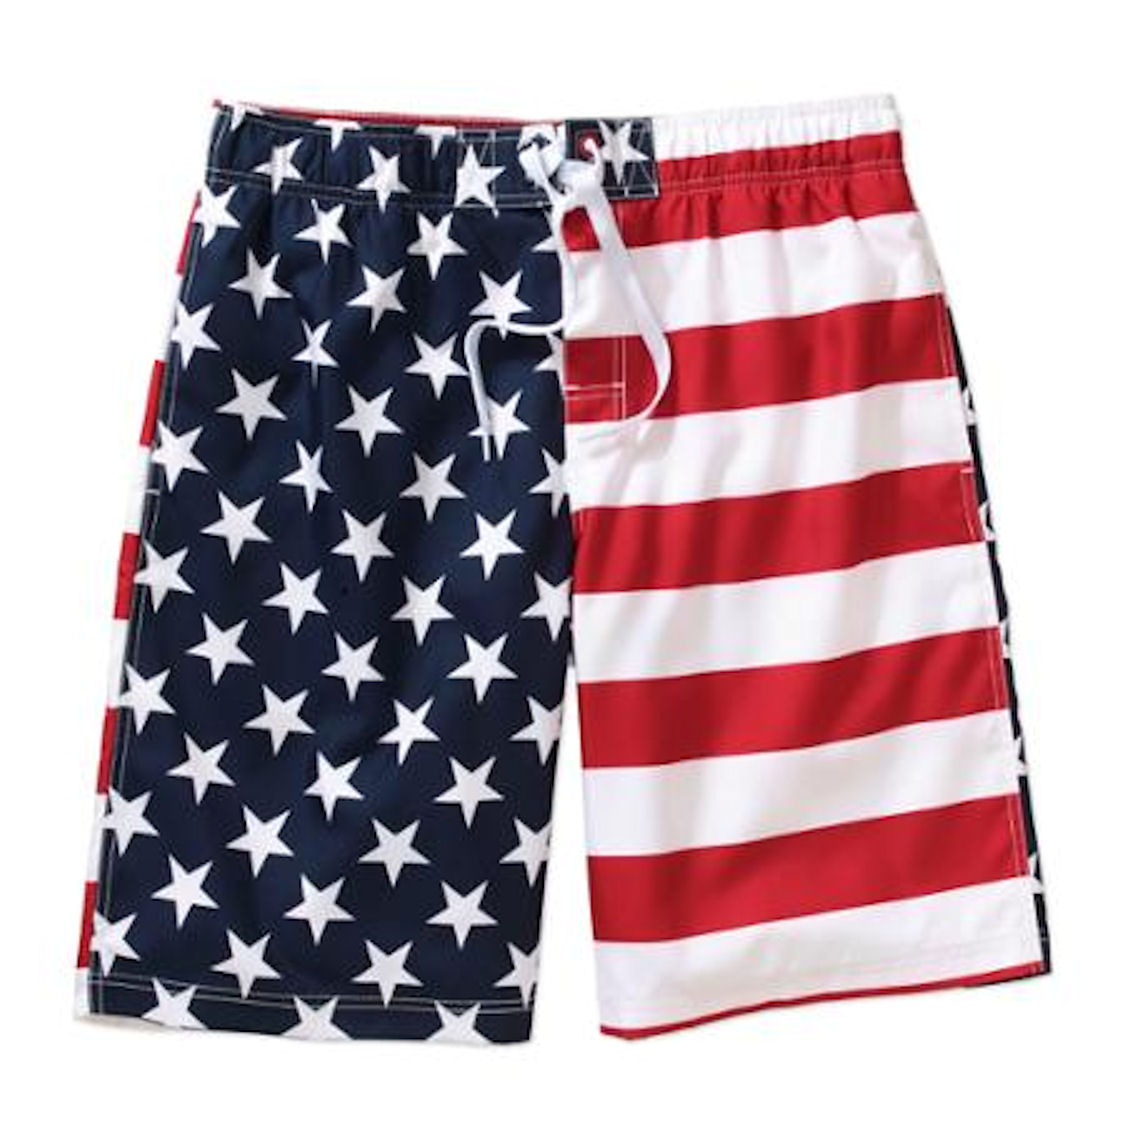 Faded Glory Men's Patriotic USA American Flag Swim Trunks (Medium)